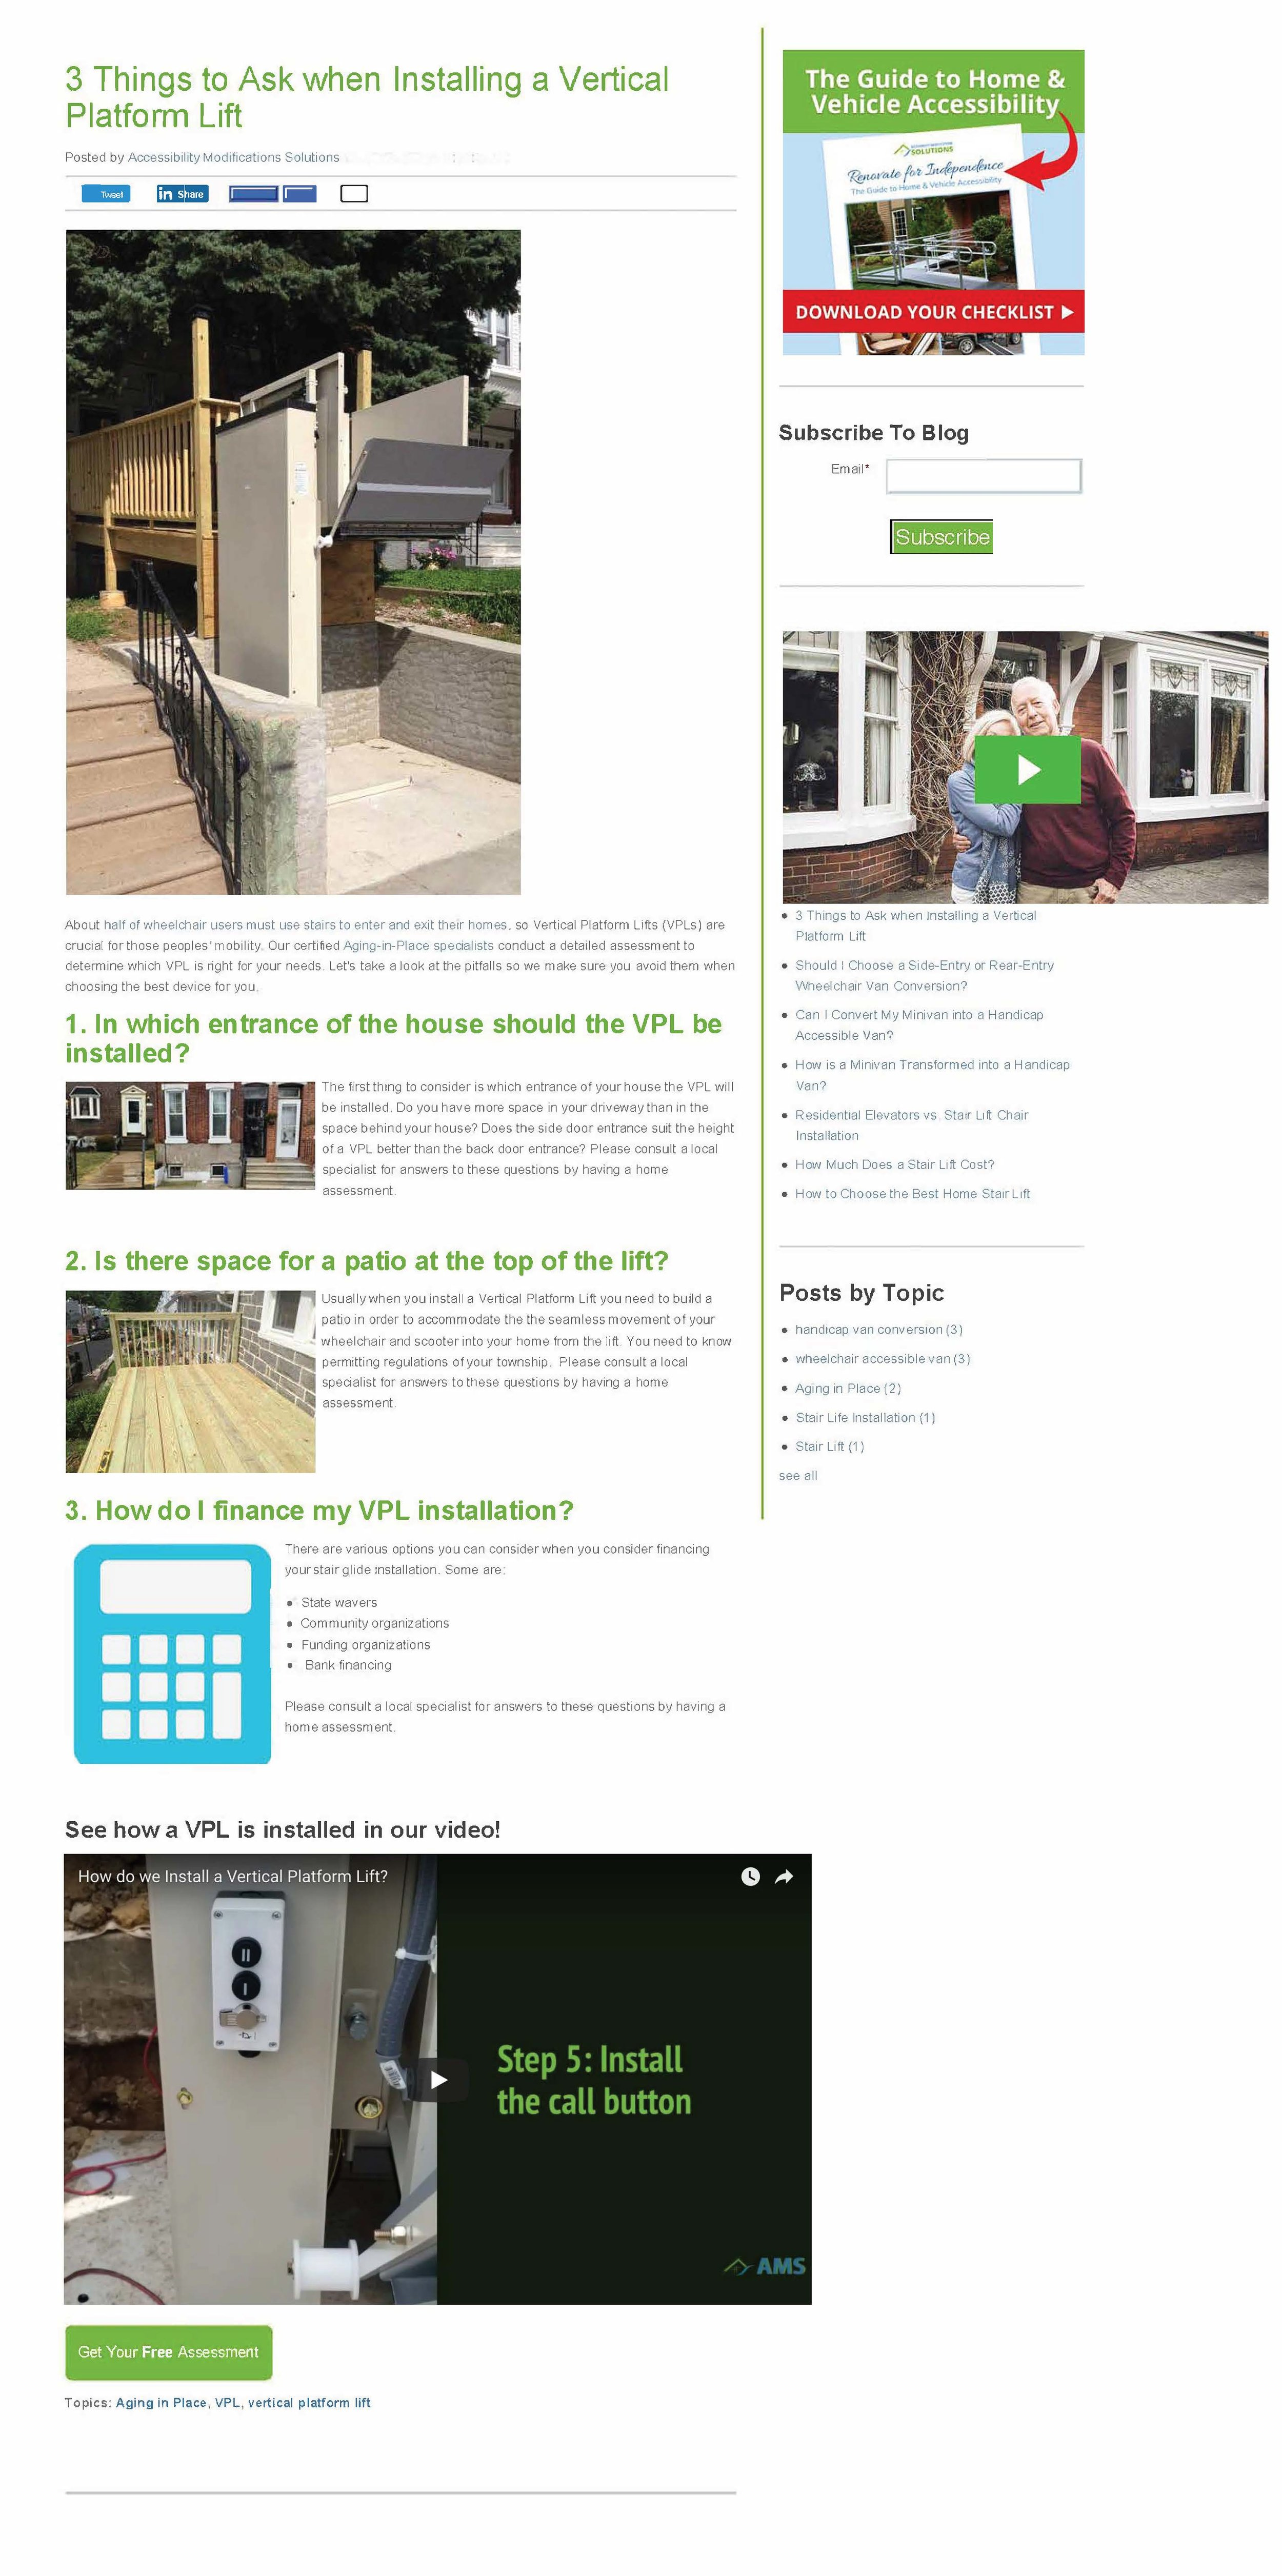 3 Things to Ask when Installing a Vertical Platform Lift.jpg